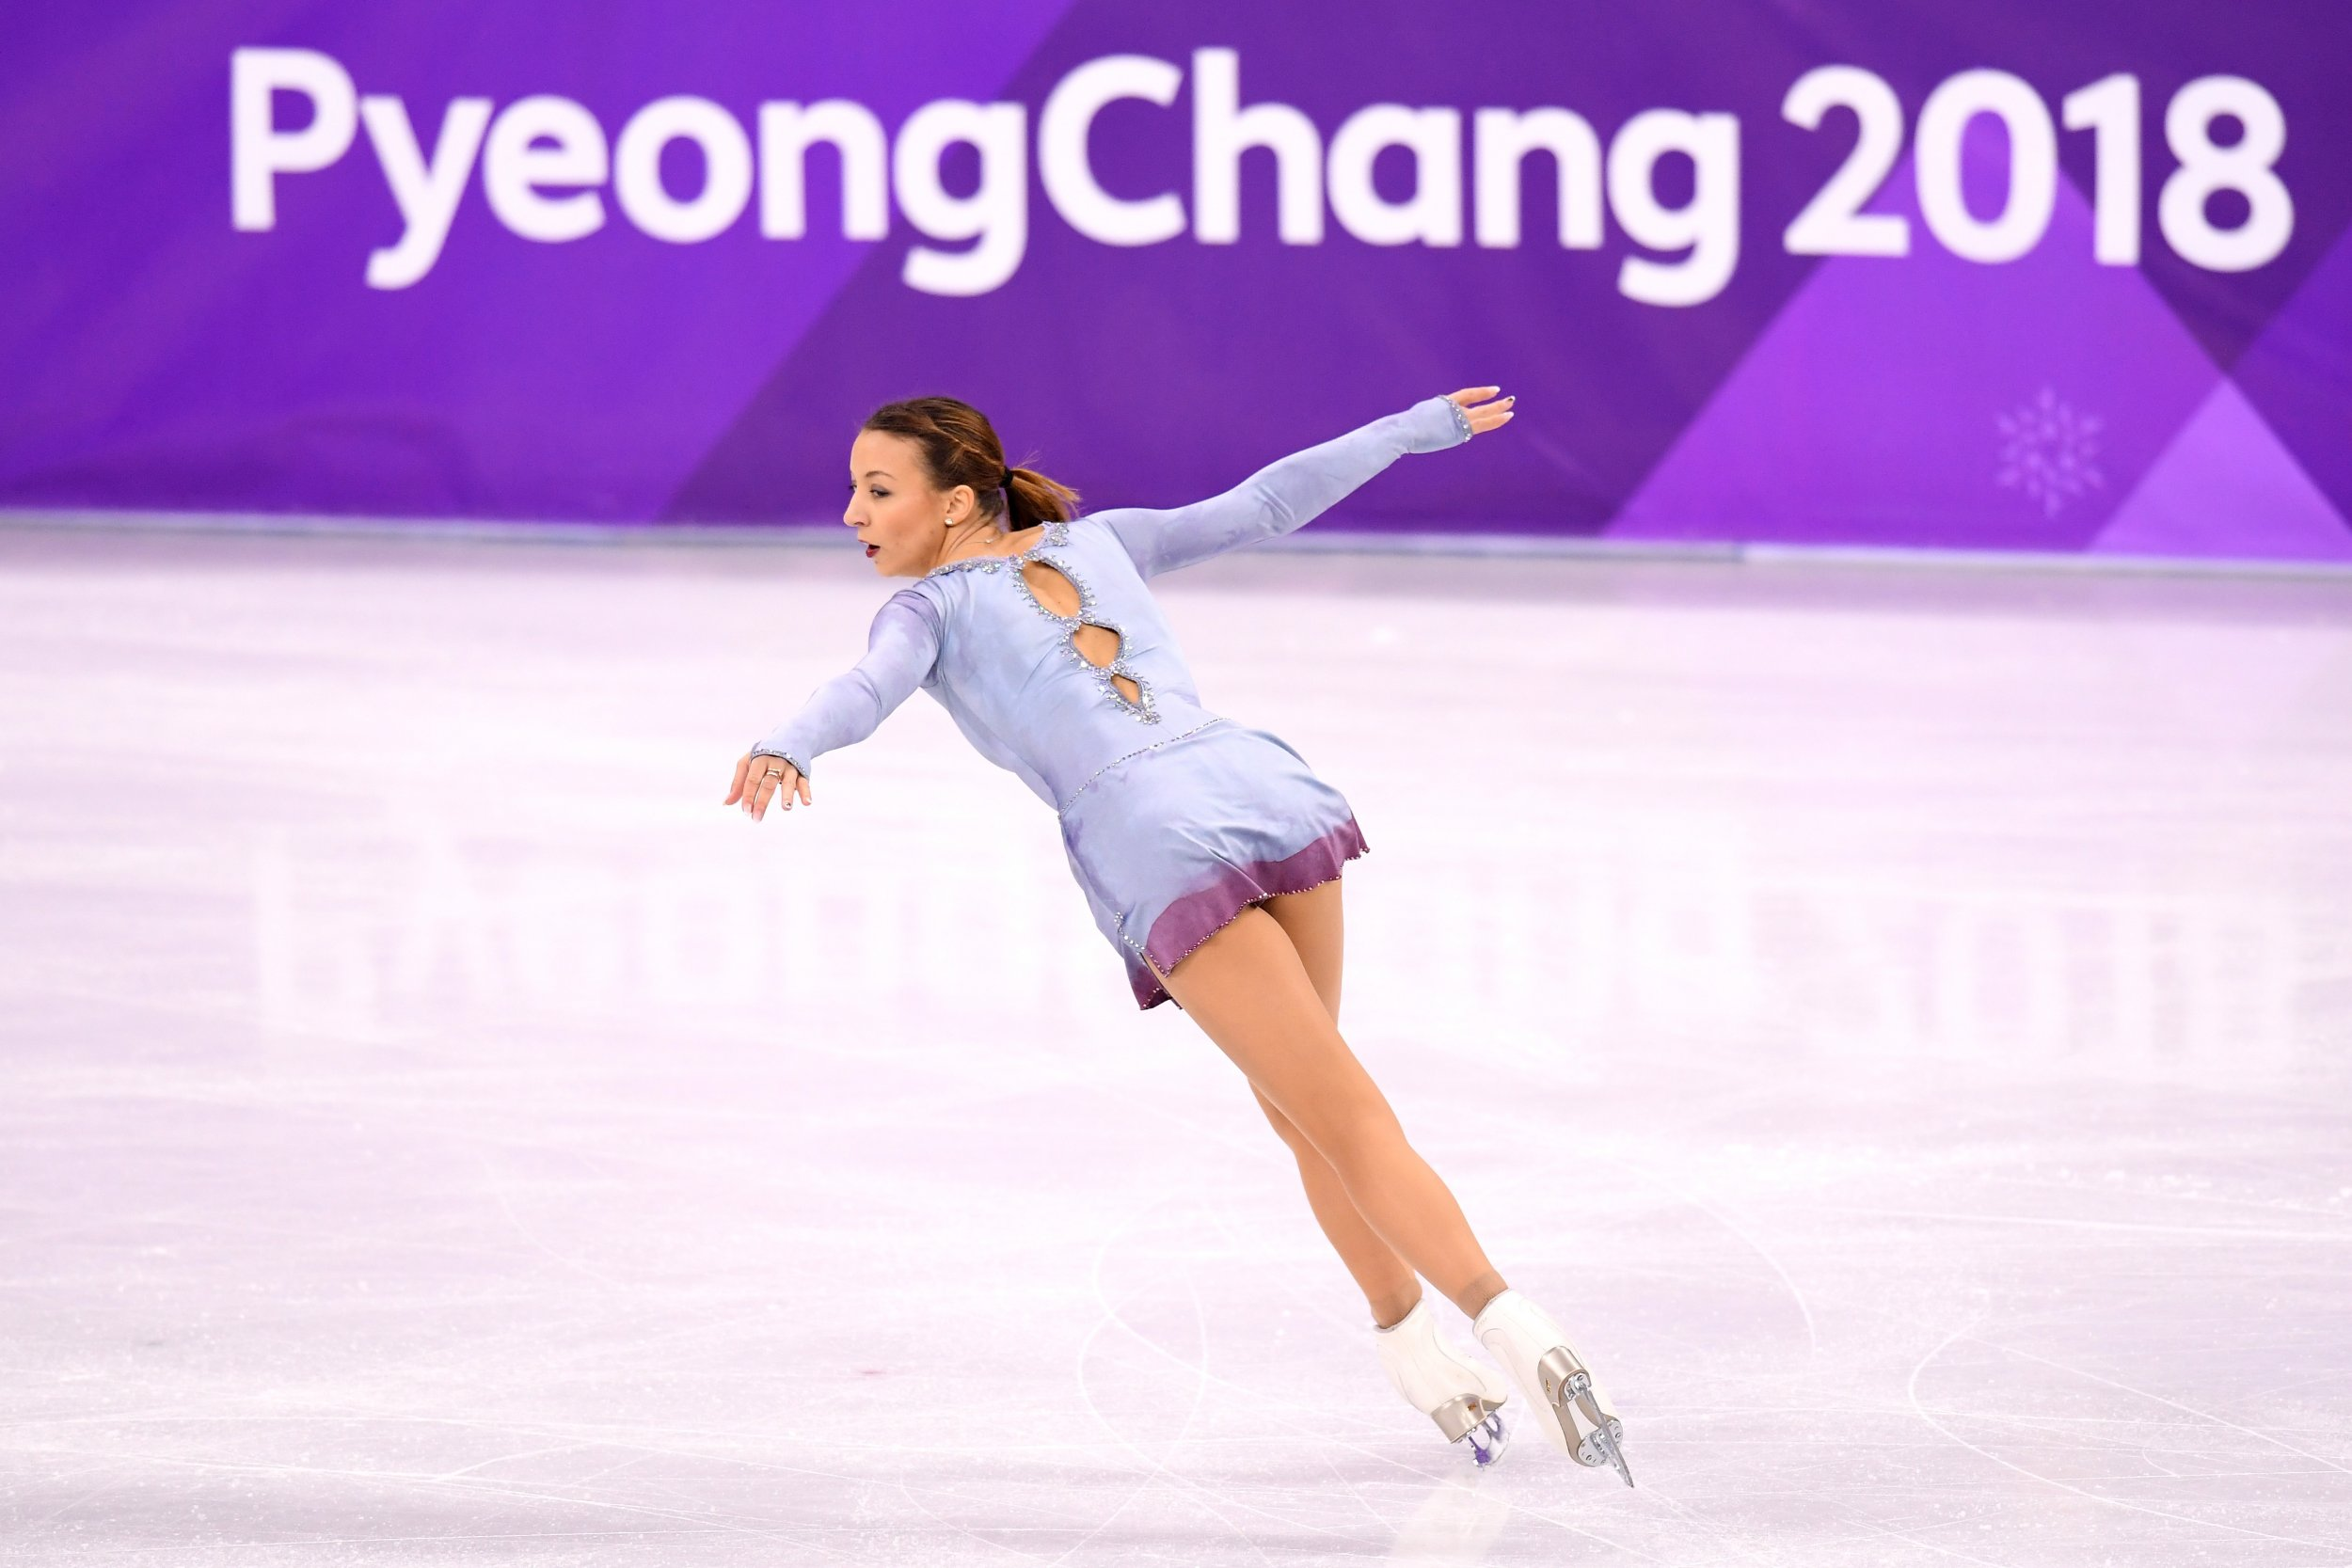 Nicole Schott Not the First German Figure Skater to Perform to Music